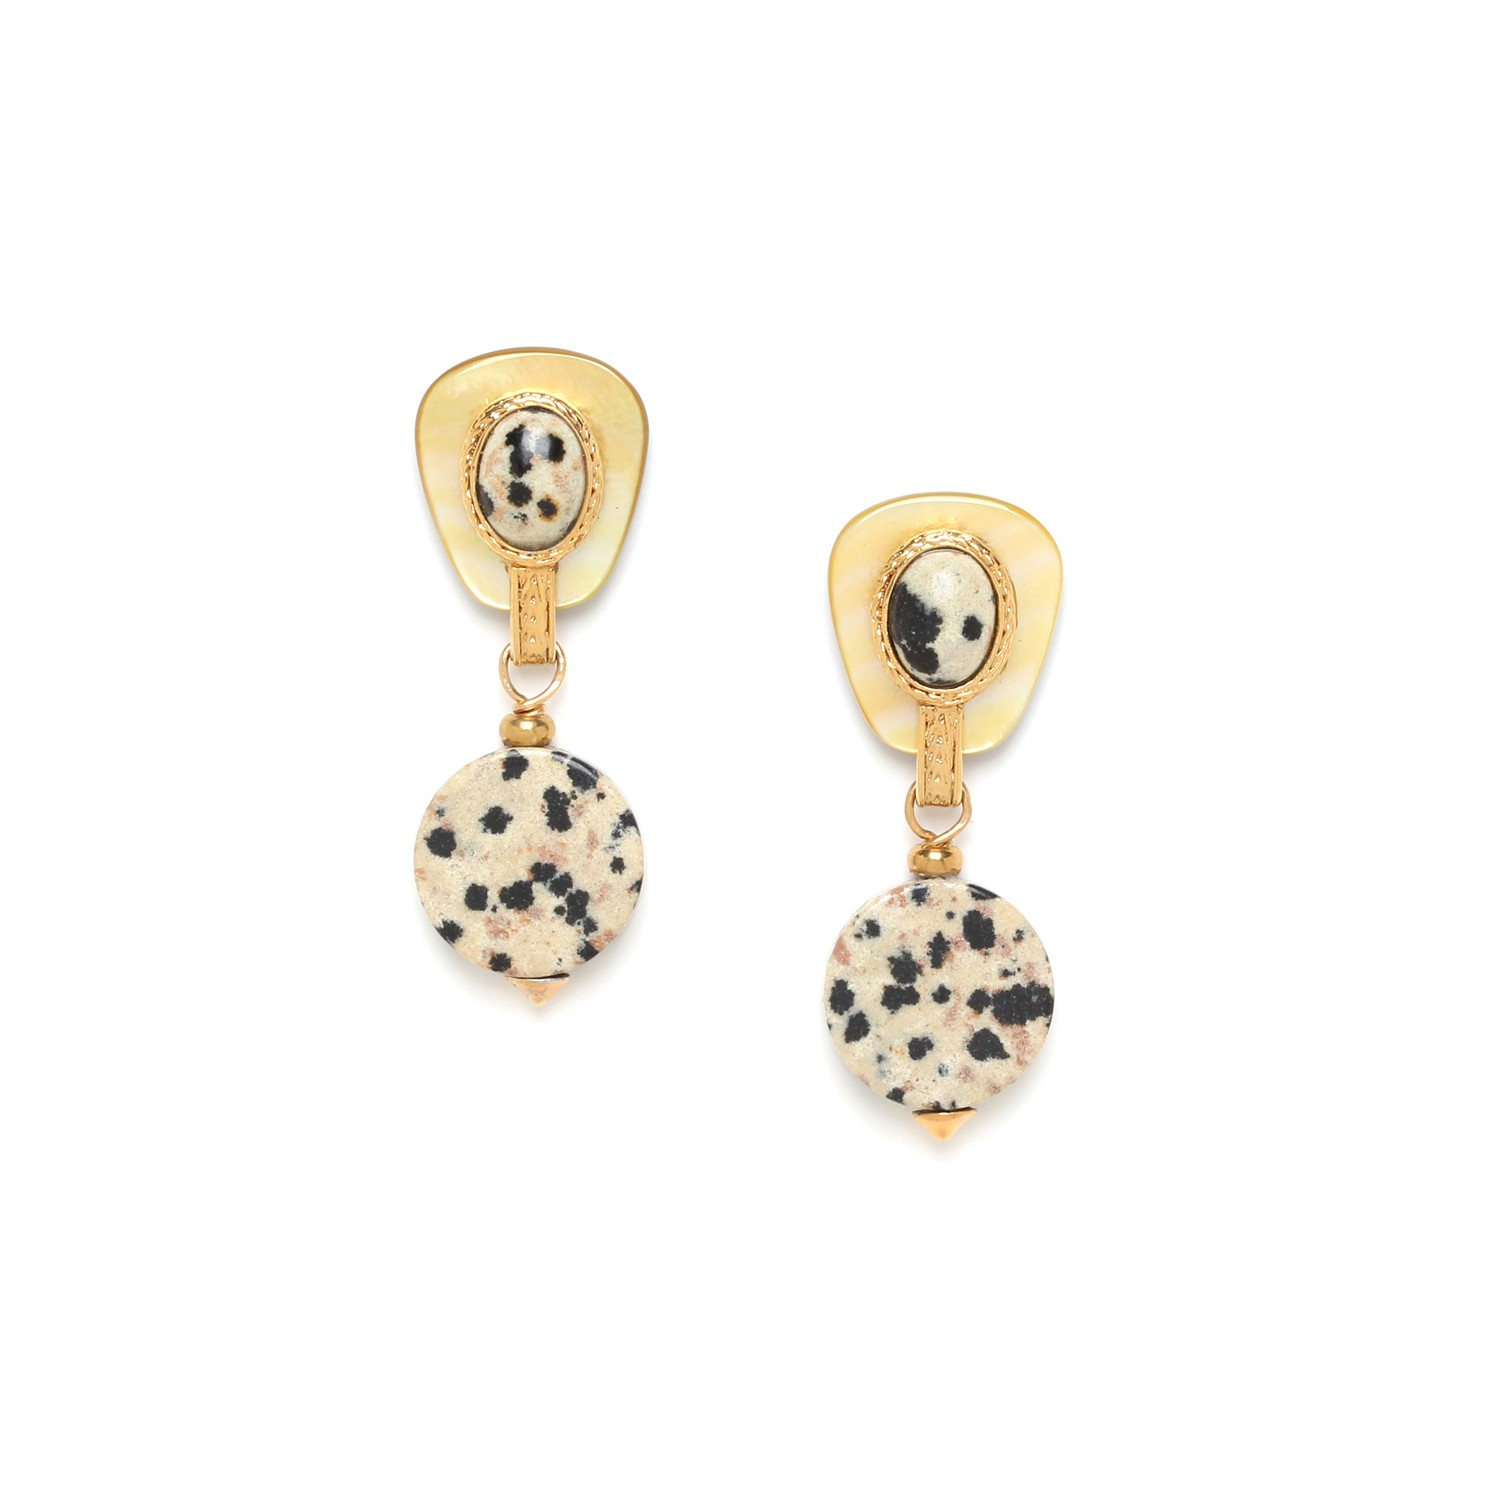 TIZI OUZOU flat bead earrings